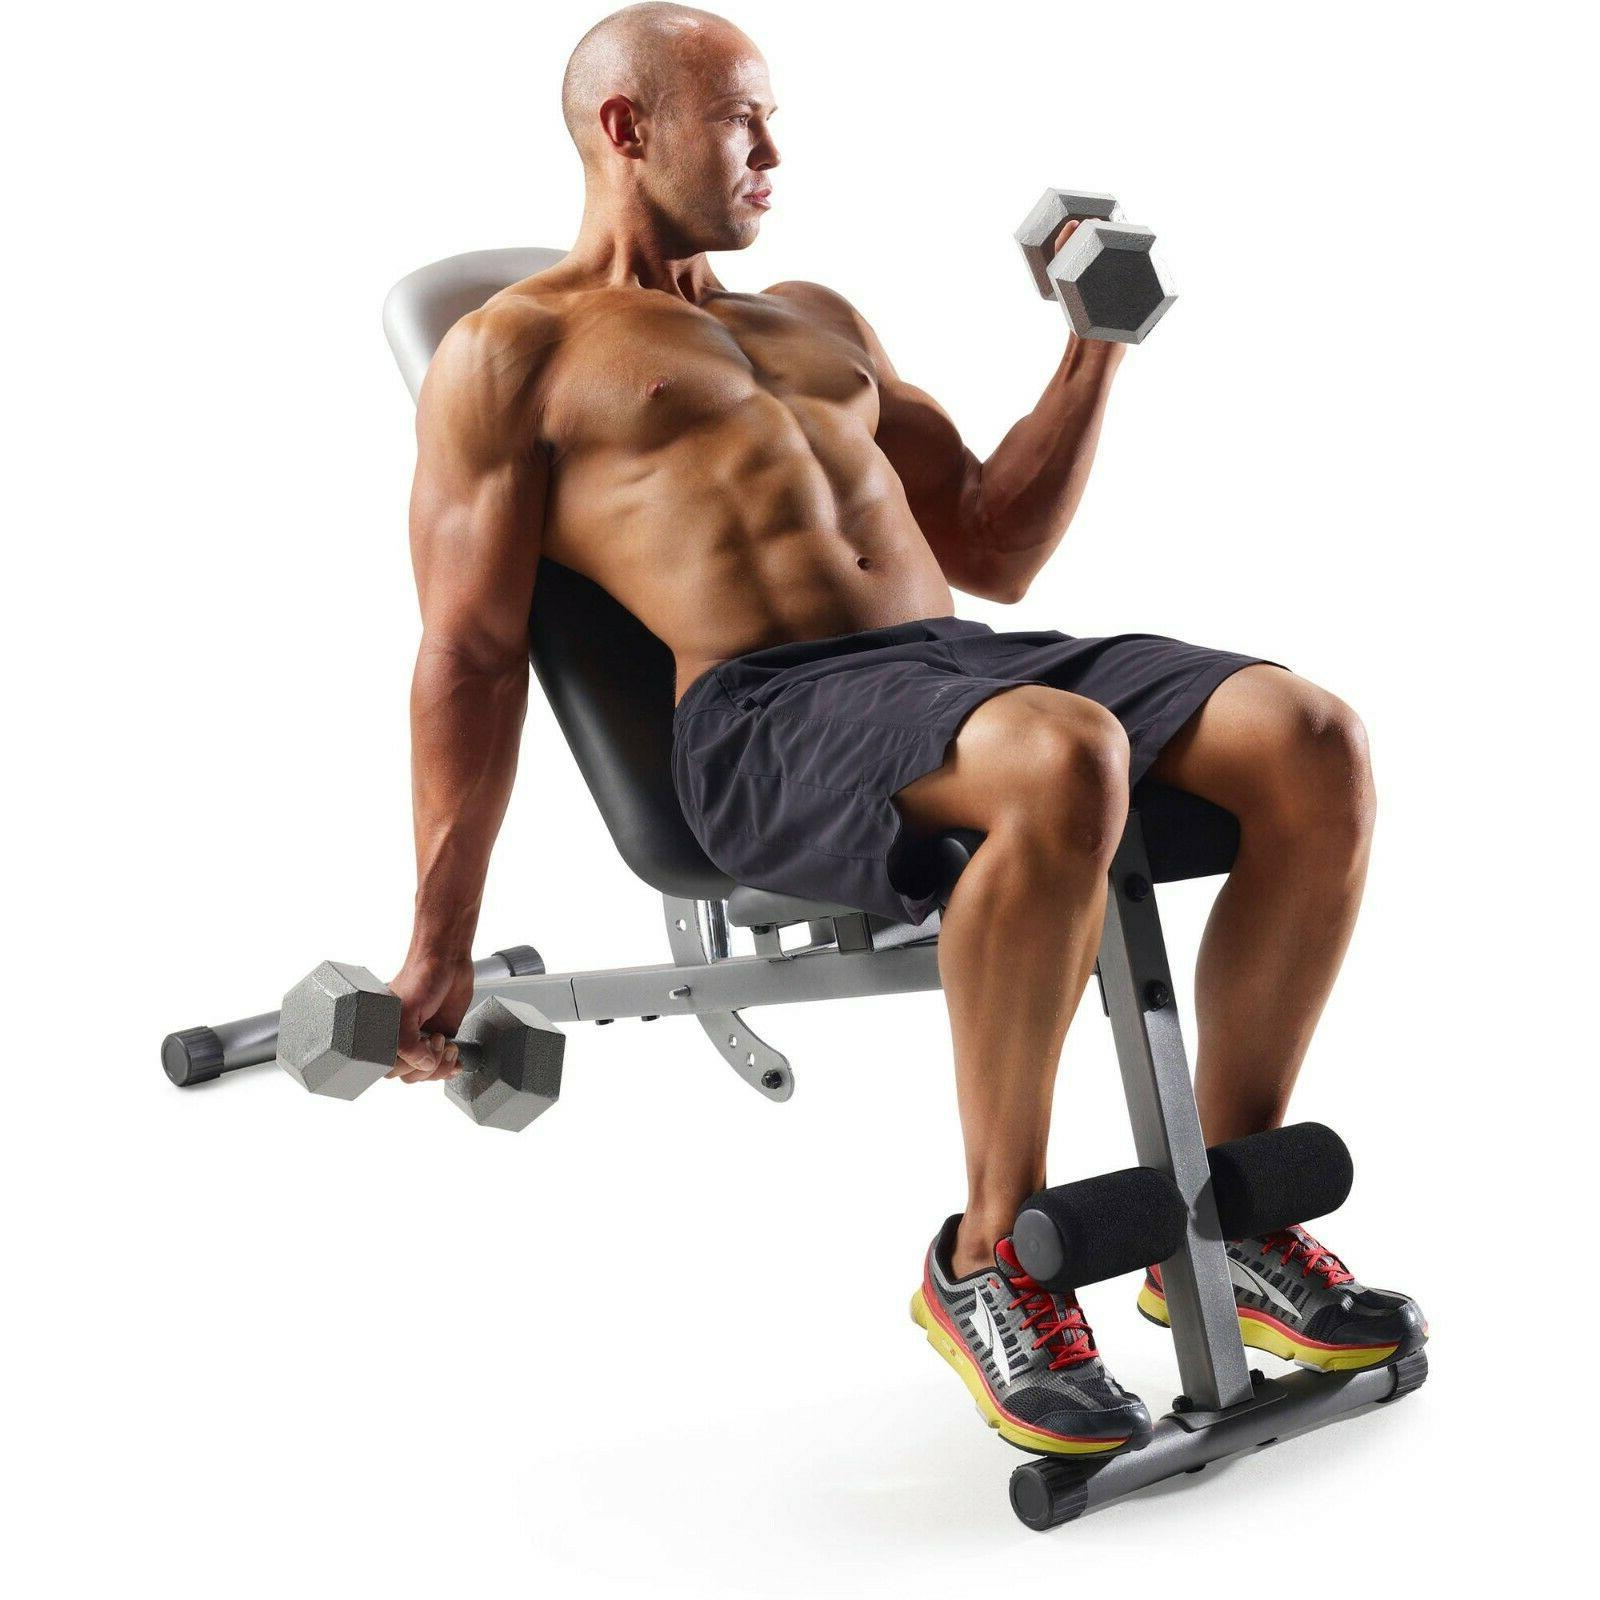 ADJUSTABLE WEIGHT Incline Exercise Workout